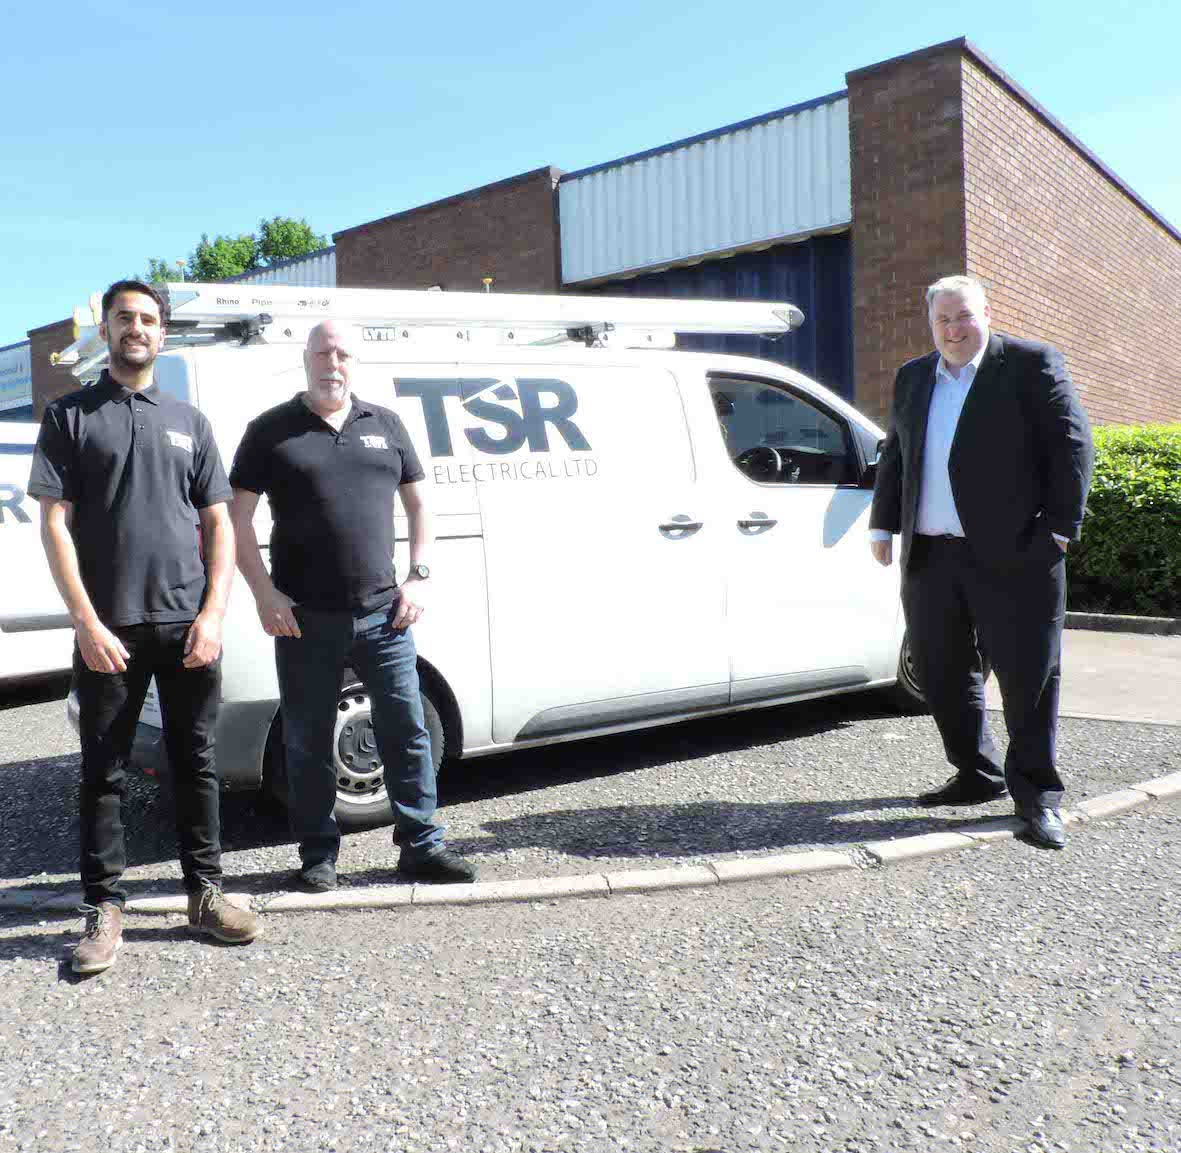 TSR Electrical